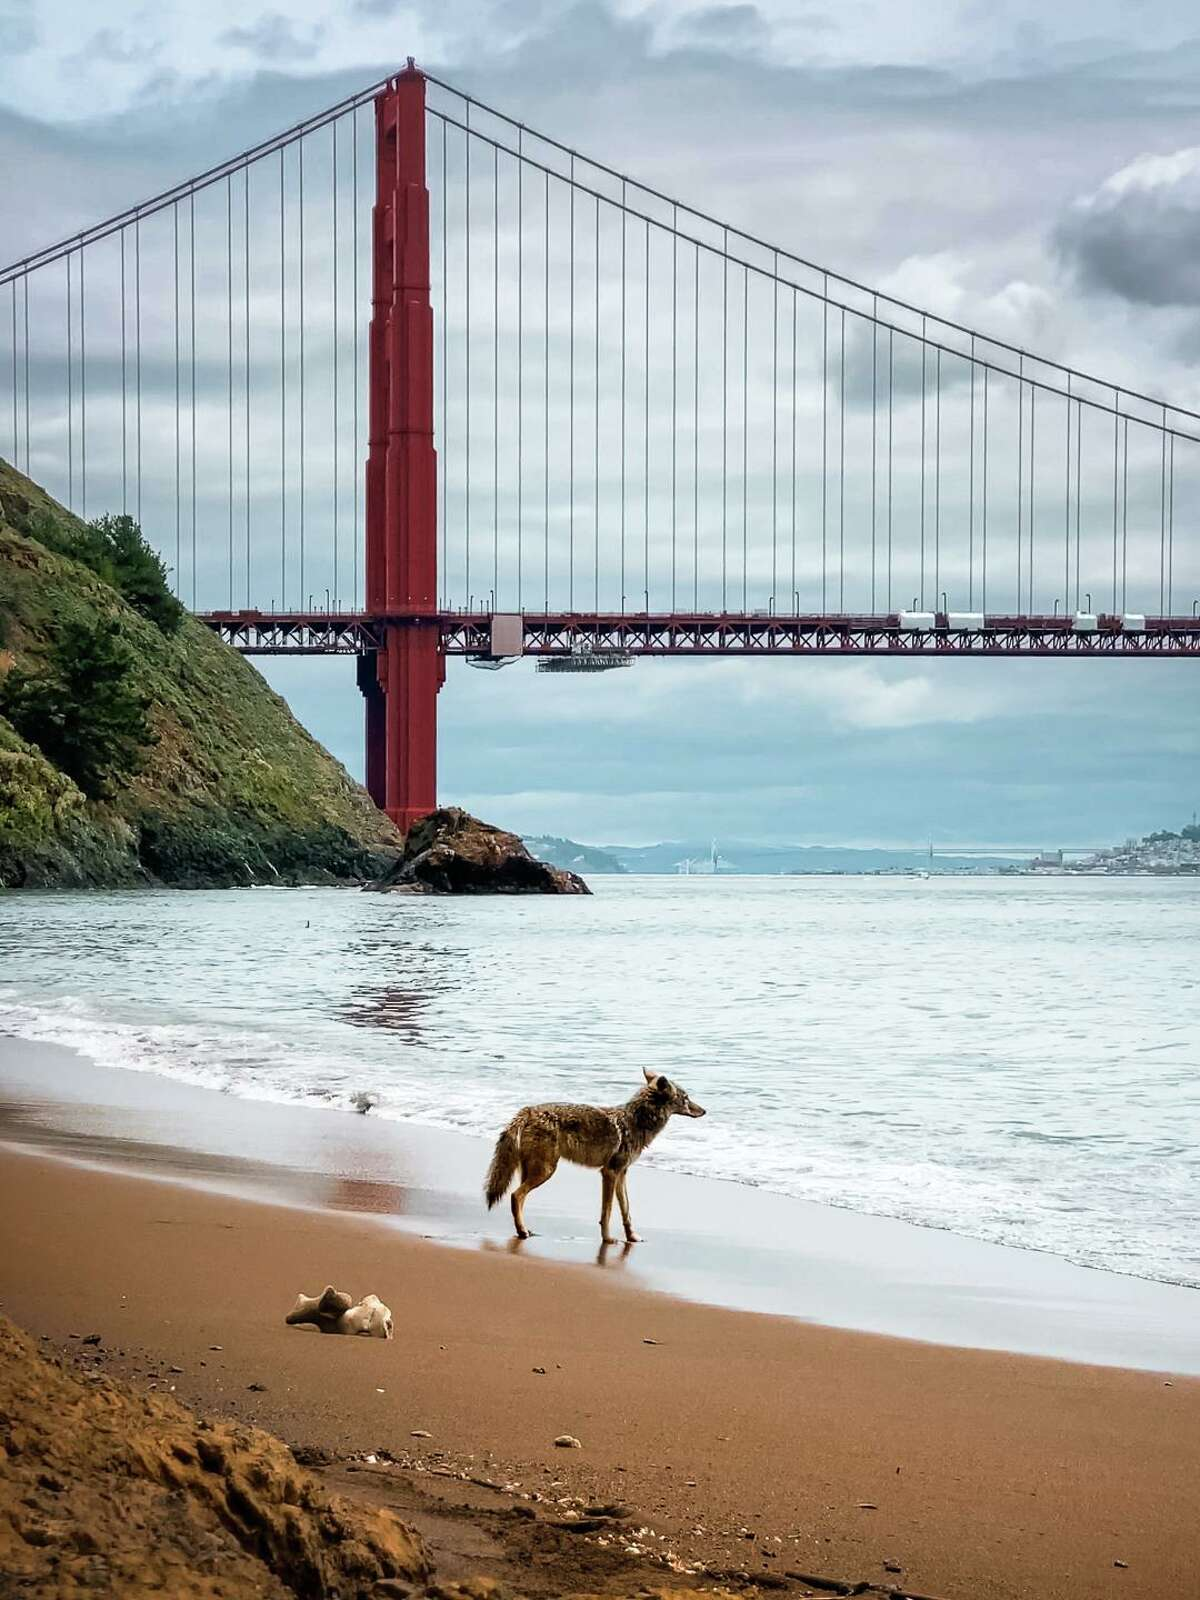 A coyote looks over the water during a visit to a mostly deserted Kirby Cove on the Marin County side of the Golden Gate Bridge. Photographer Scott Oller captured the moment on April 9, 2020.. (Photo courtesy of Scott Oller.)